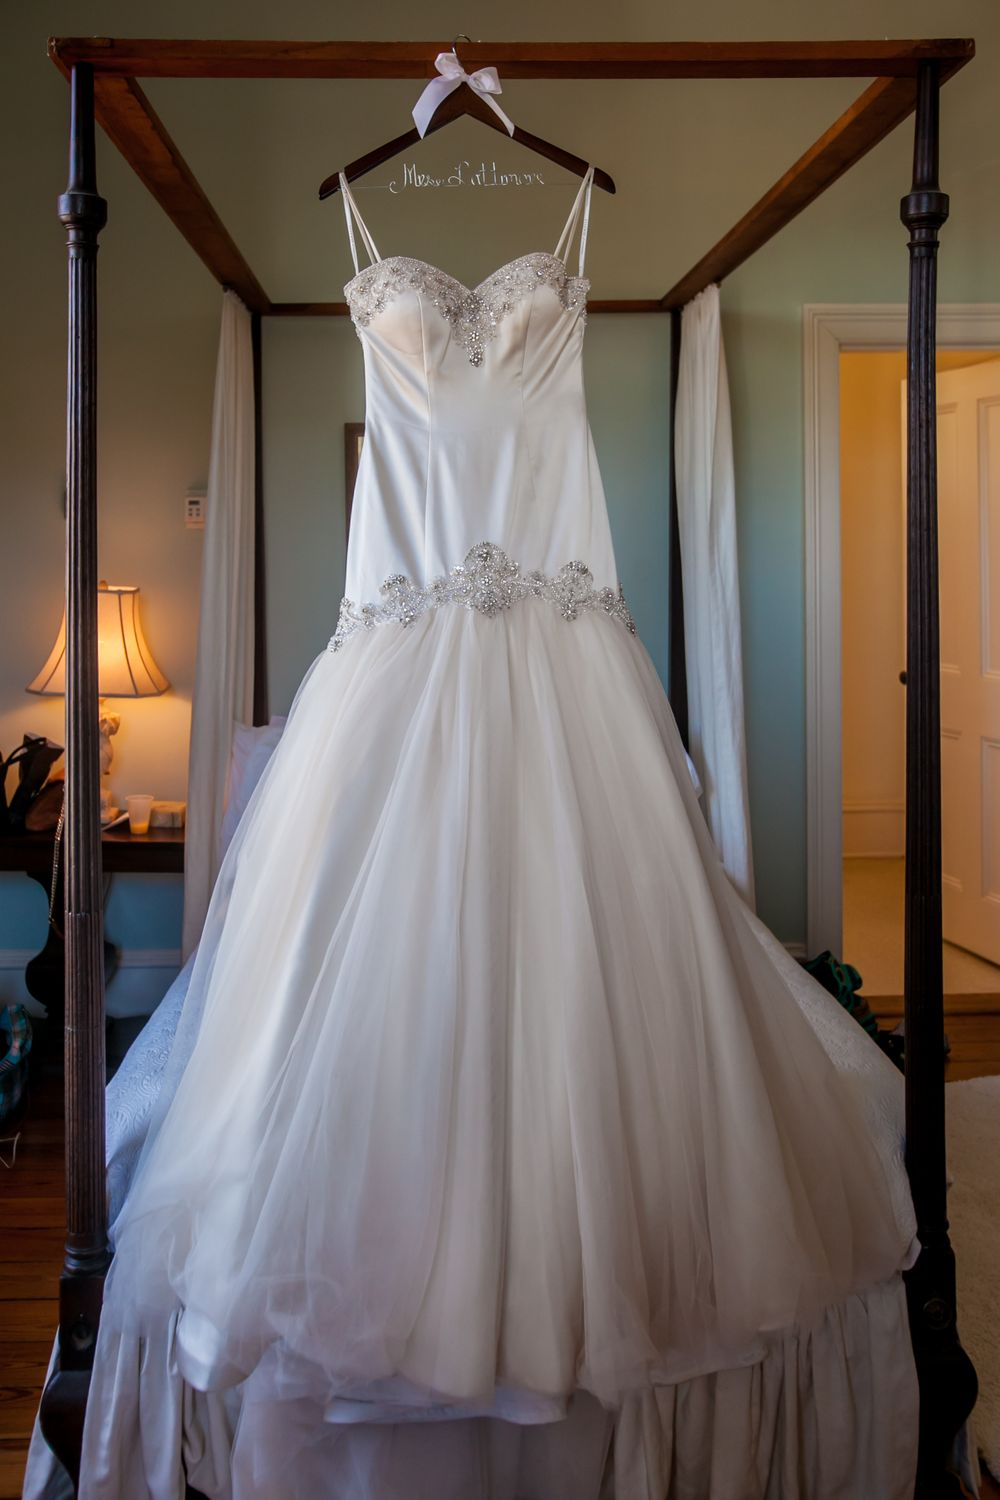 Wedding dress at the wedding of Miranda & Marcus Lattimore at the Lace House in Columbia, SC. Photo by Jeff Blake